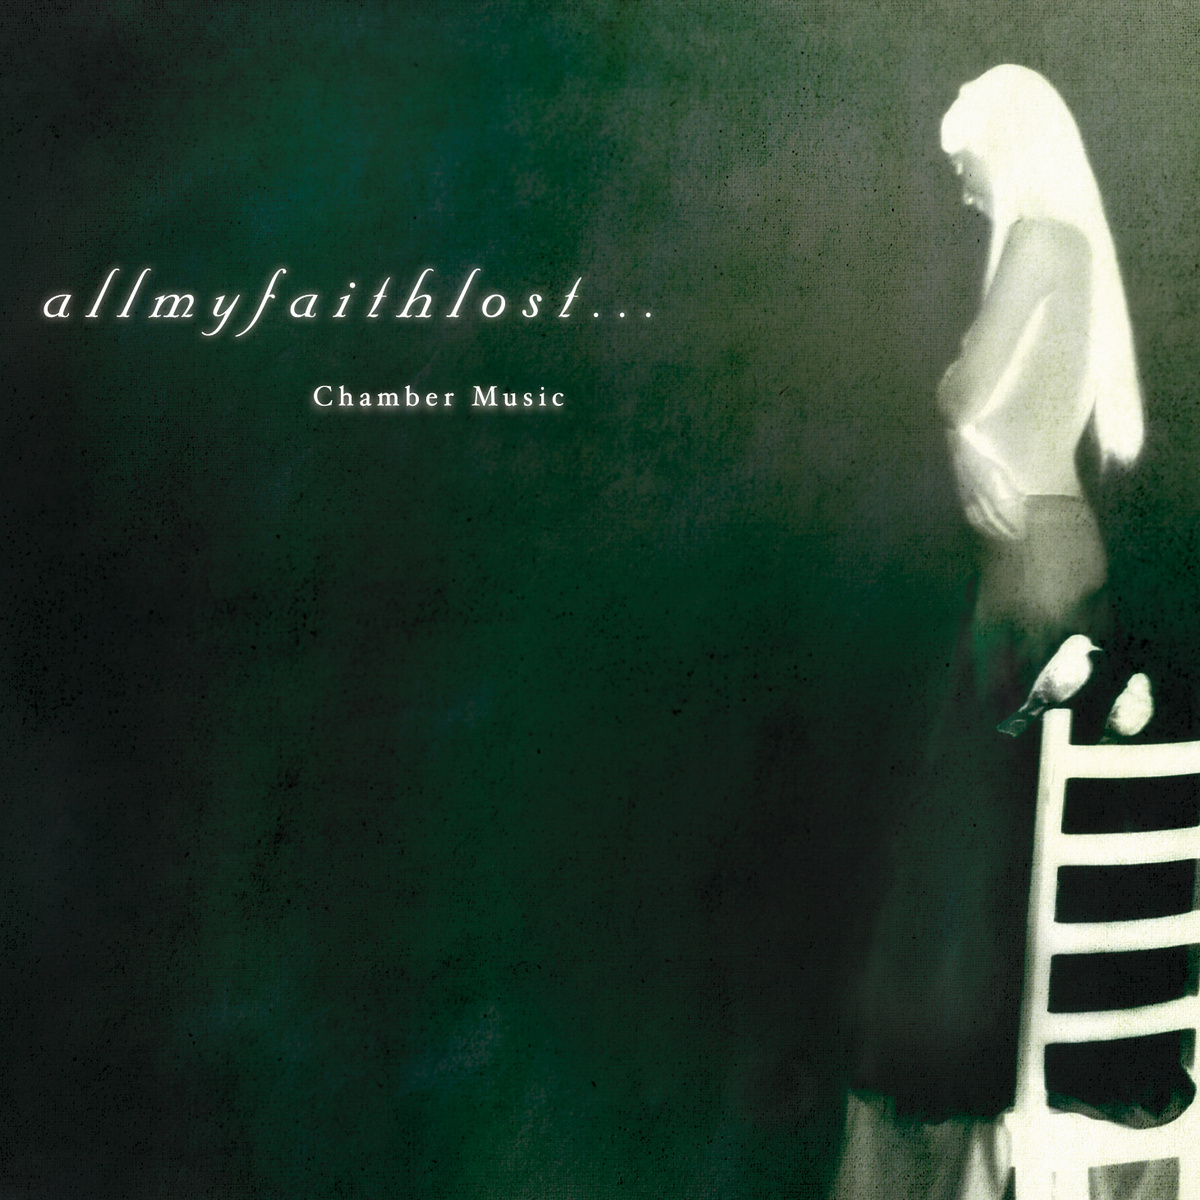 All My Faith Lost...: Chamber Music 【予約受付中】